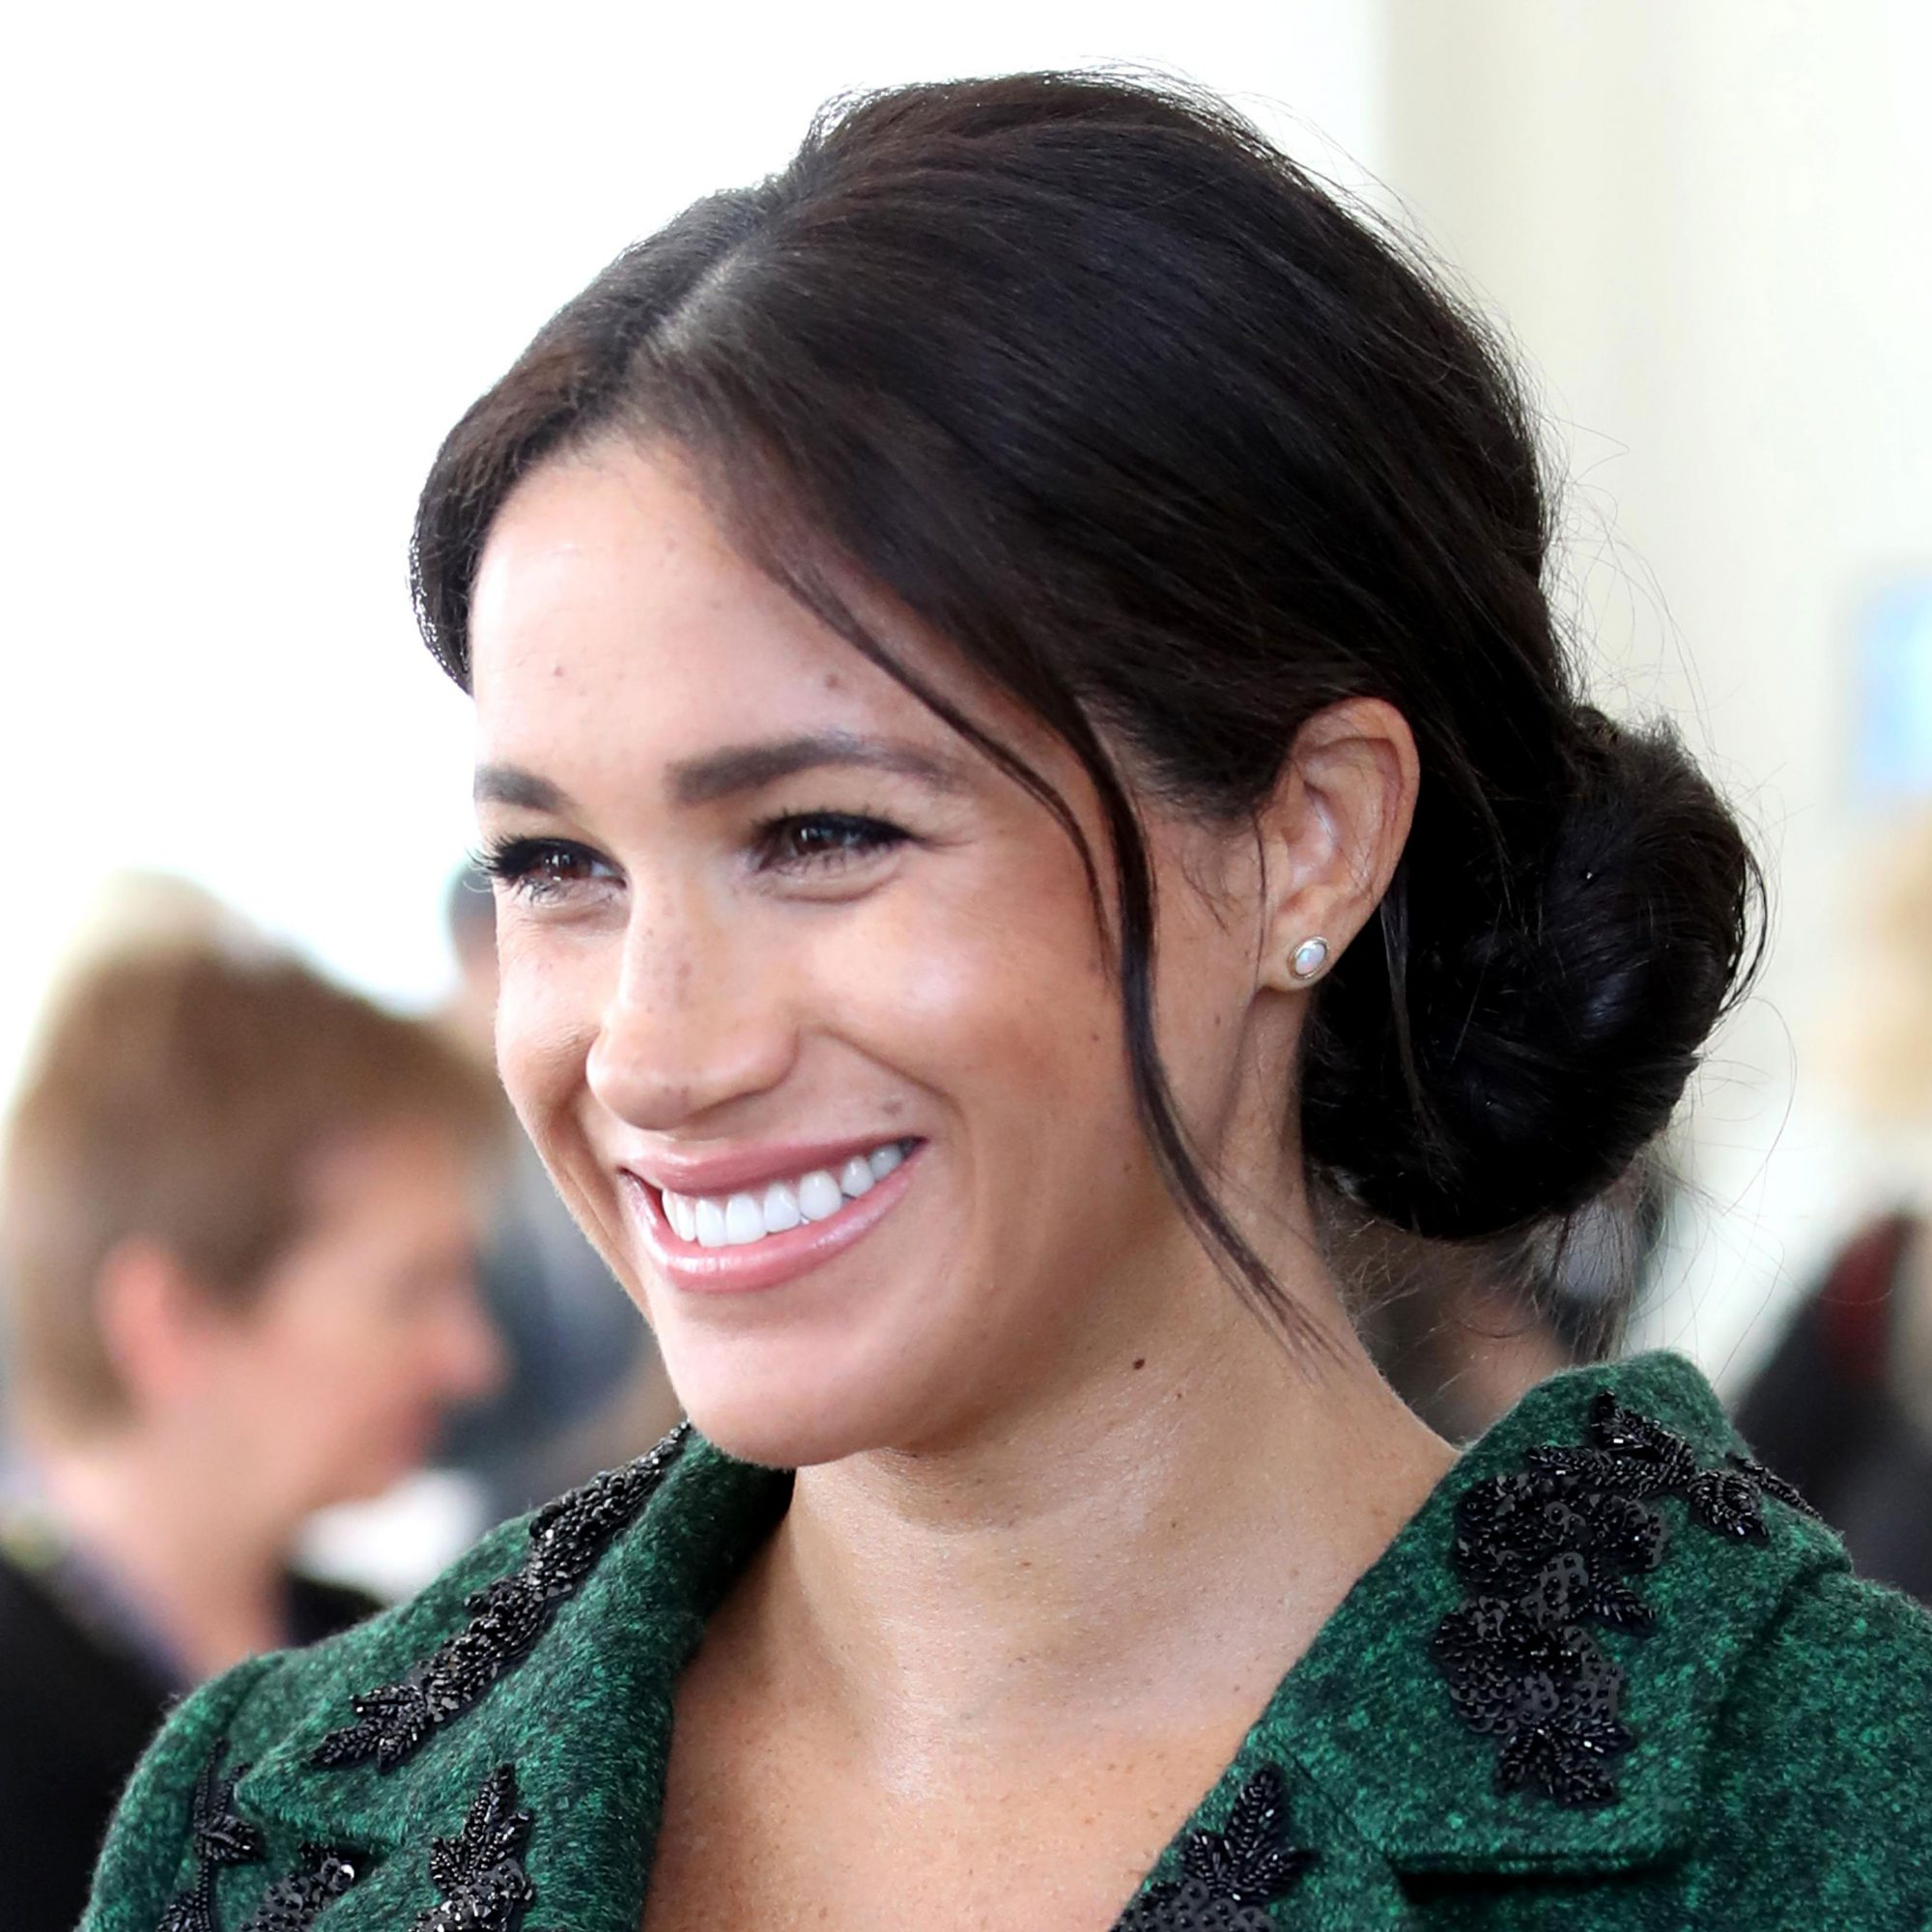 Medium Length Hairstyle: Loose and Casual Chignon, Meghan Markle